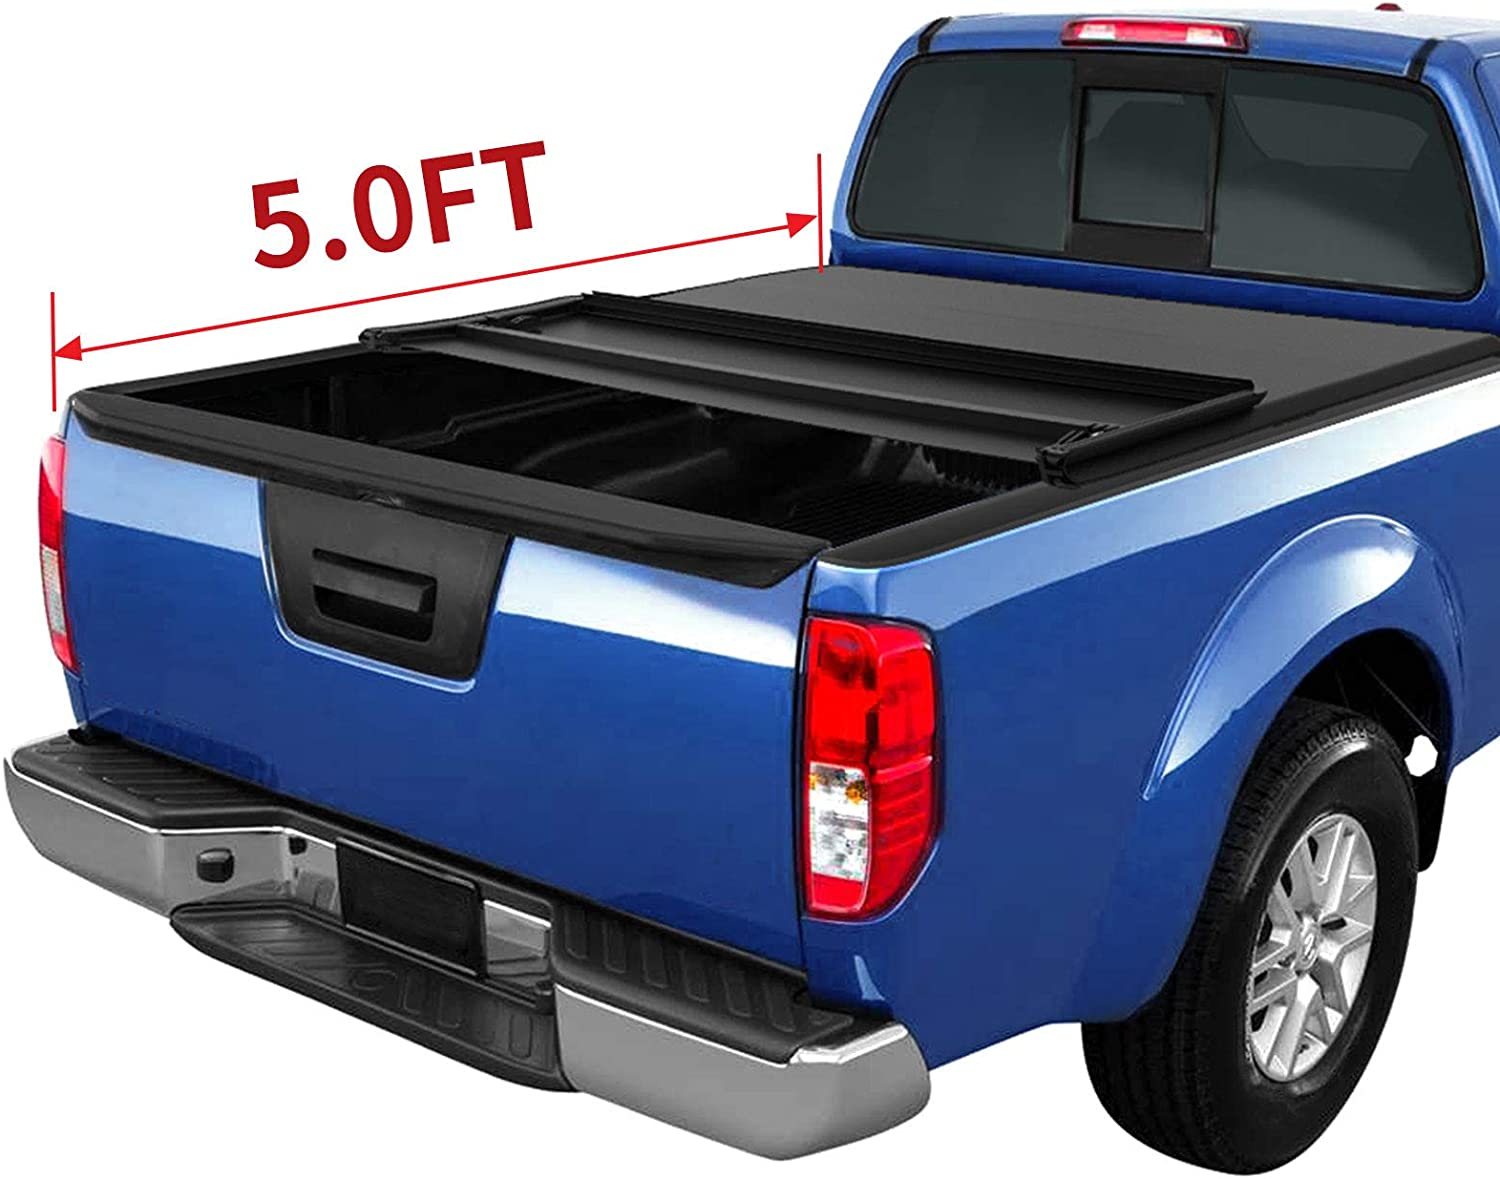 Amazon Com Oedro Tri Fold Truck Bed Tonneau Cover Compatible With 2005 2020 Nissan Frontier 5 Feet Bed Fleetside For Models W Or W O Utili Track System Automotive